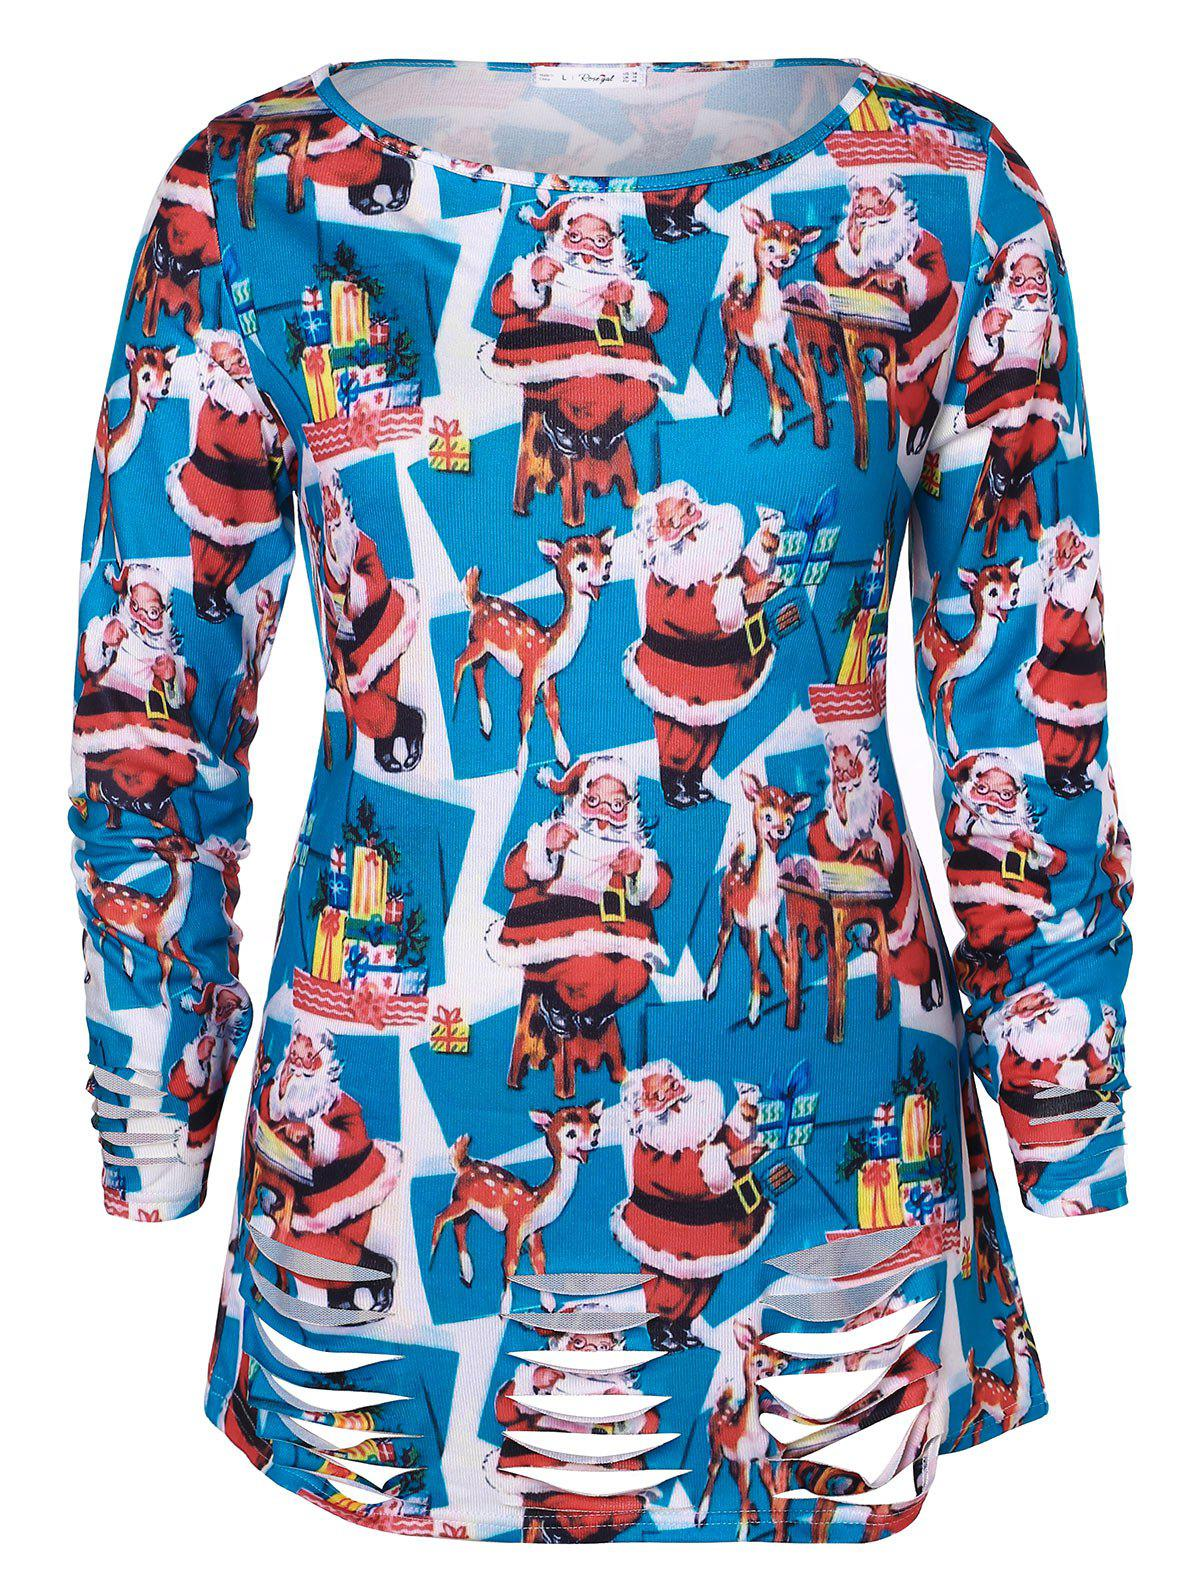 Christmas Plus Size Santa Claus Print Ripped T-shirt - DEEP SKY BLUE 2X